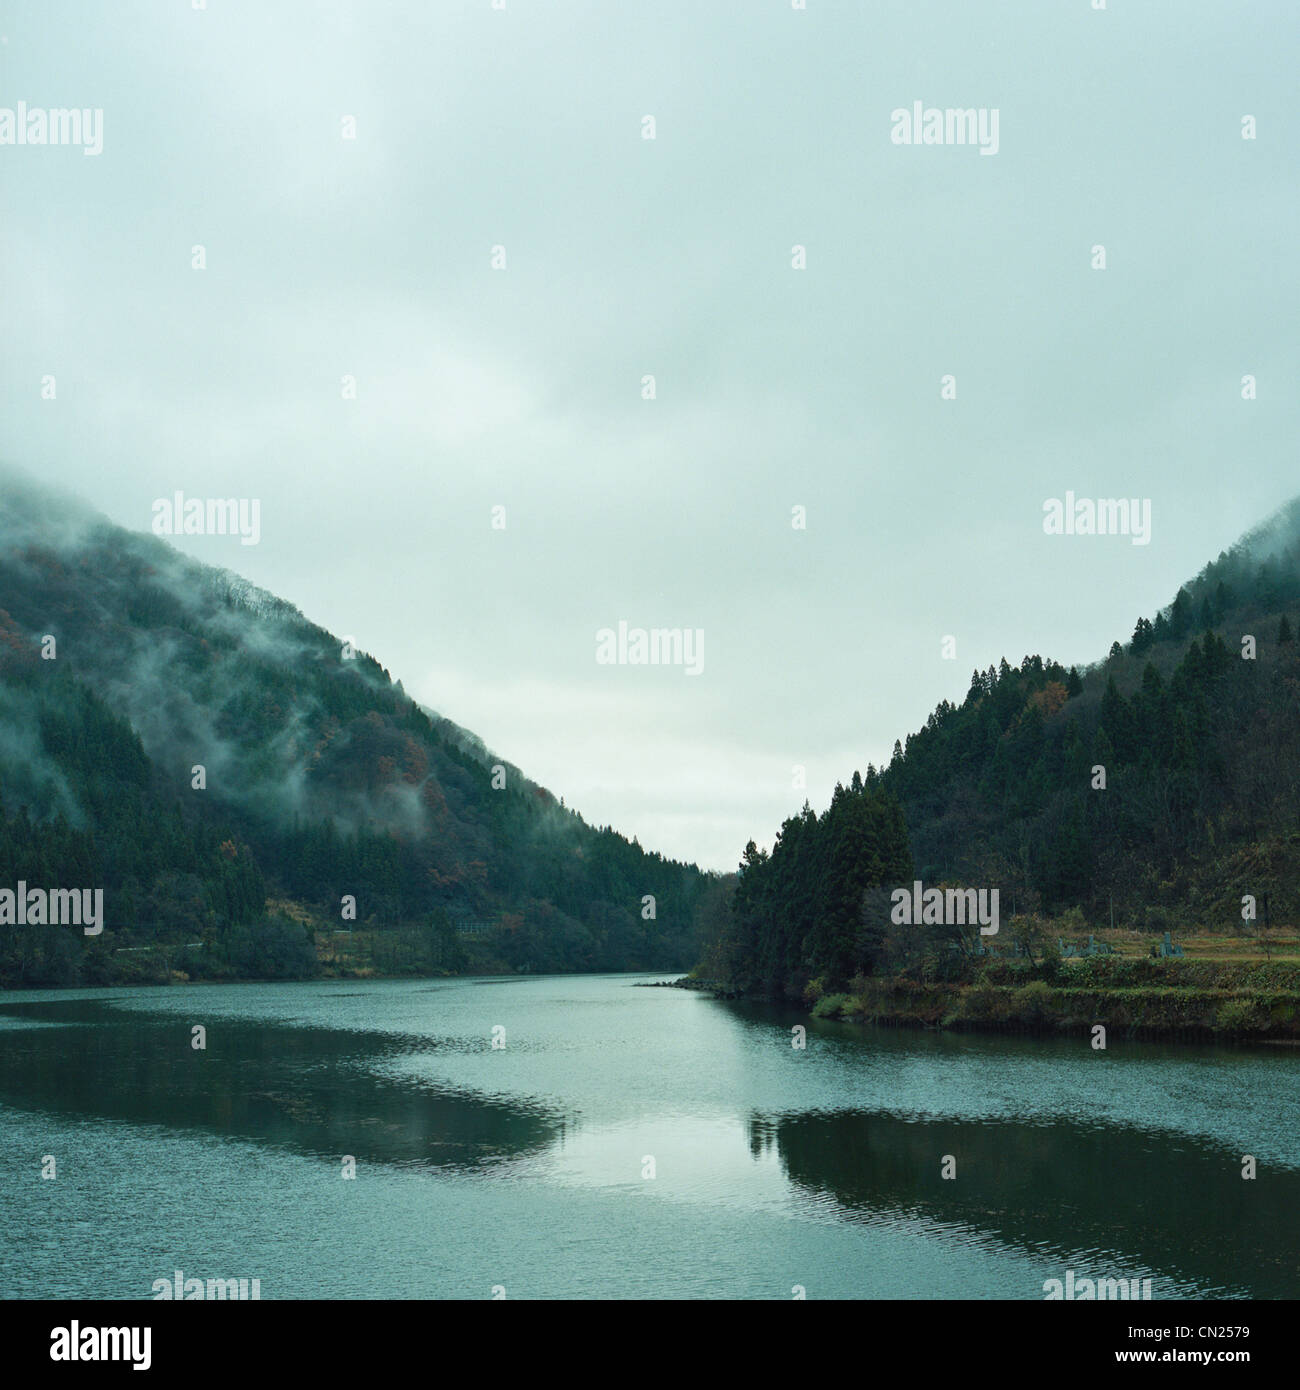 Tadami Fluss, Fukushima, Japan Stockbild